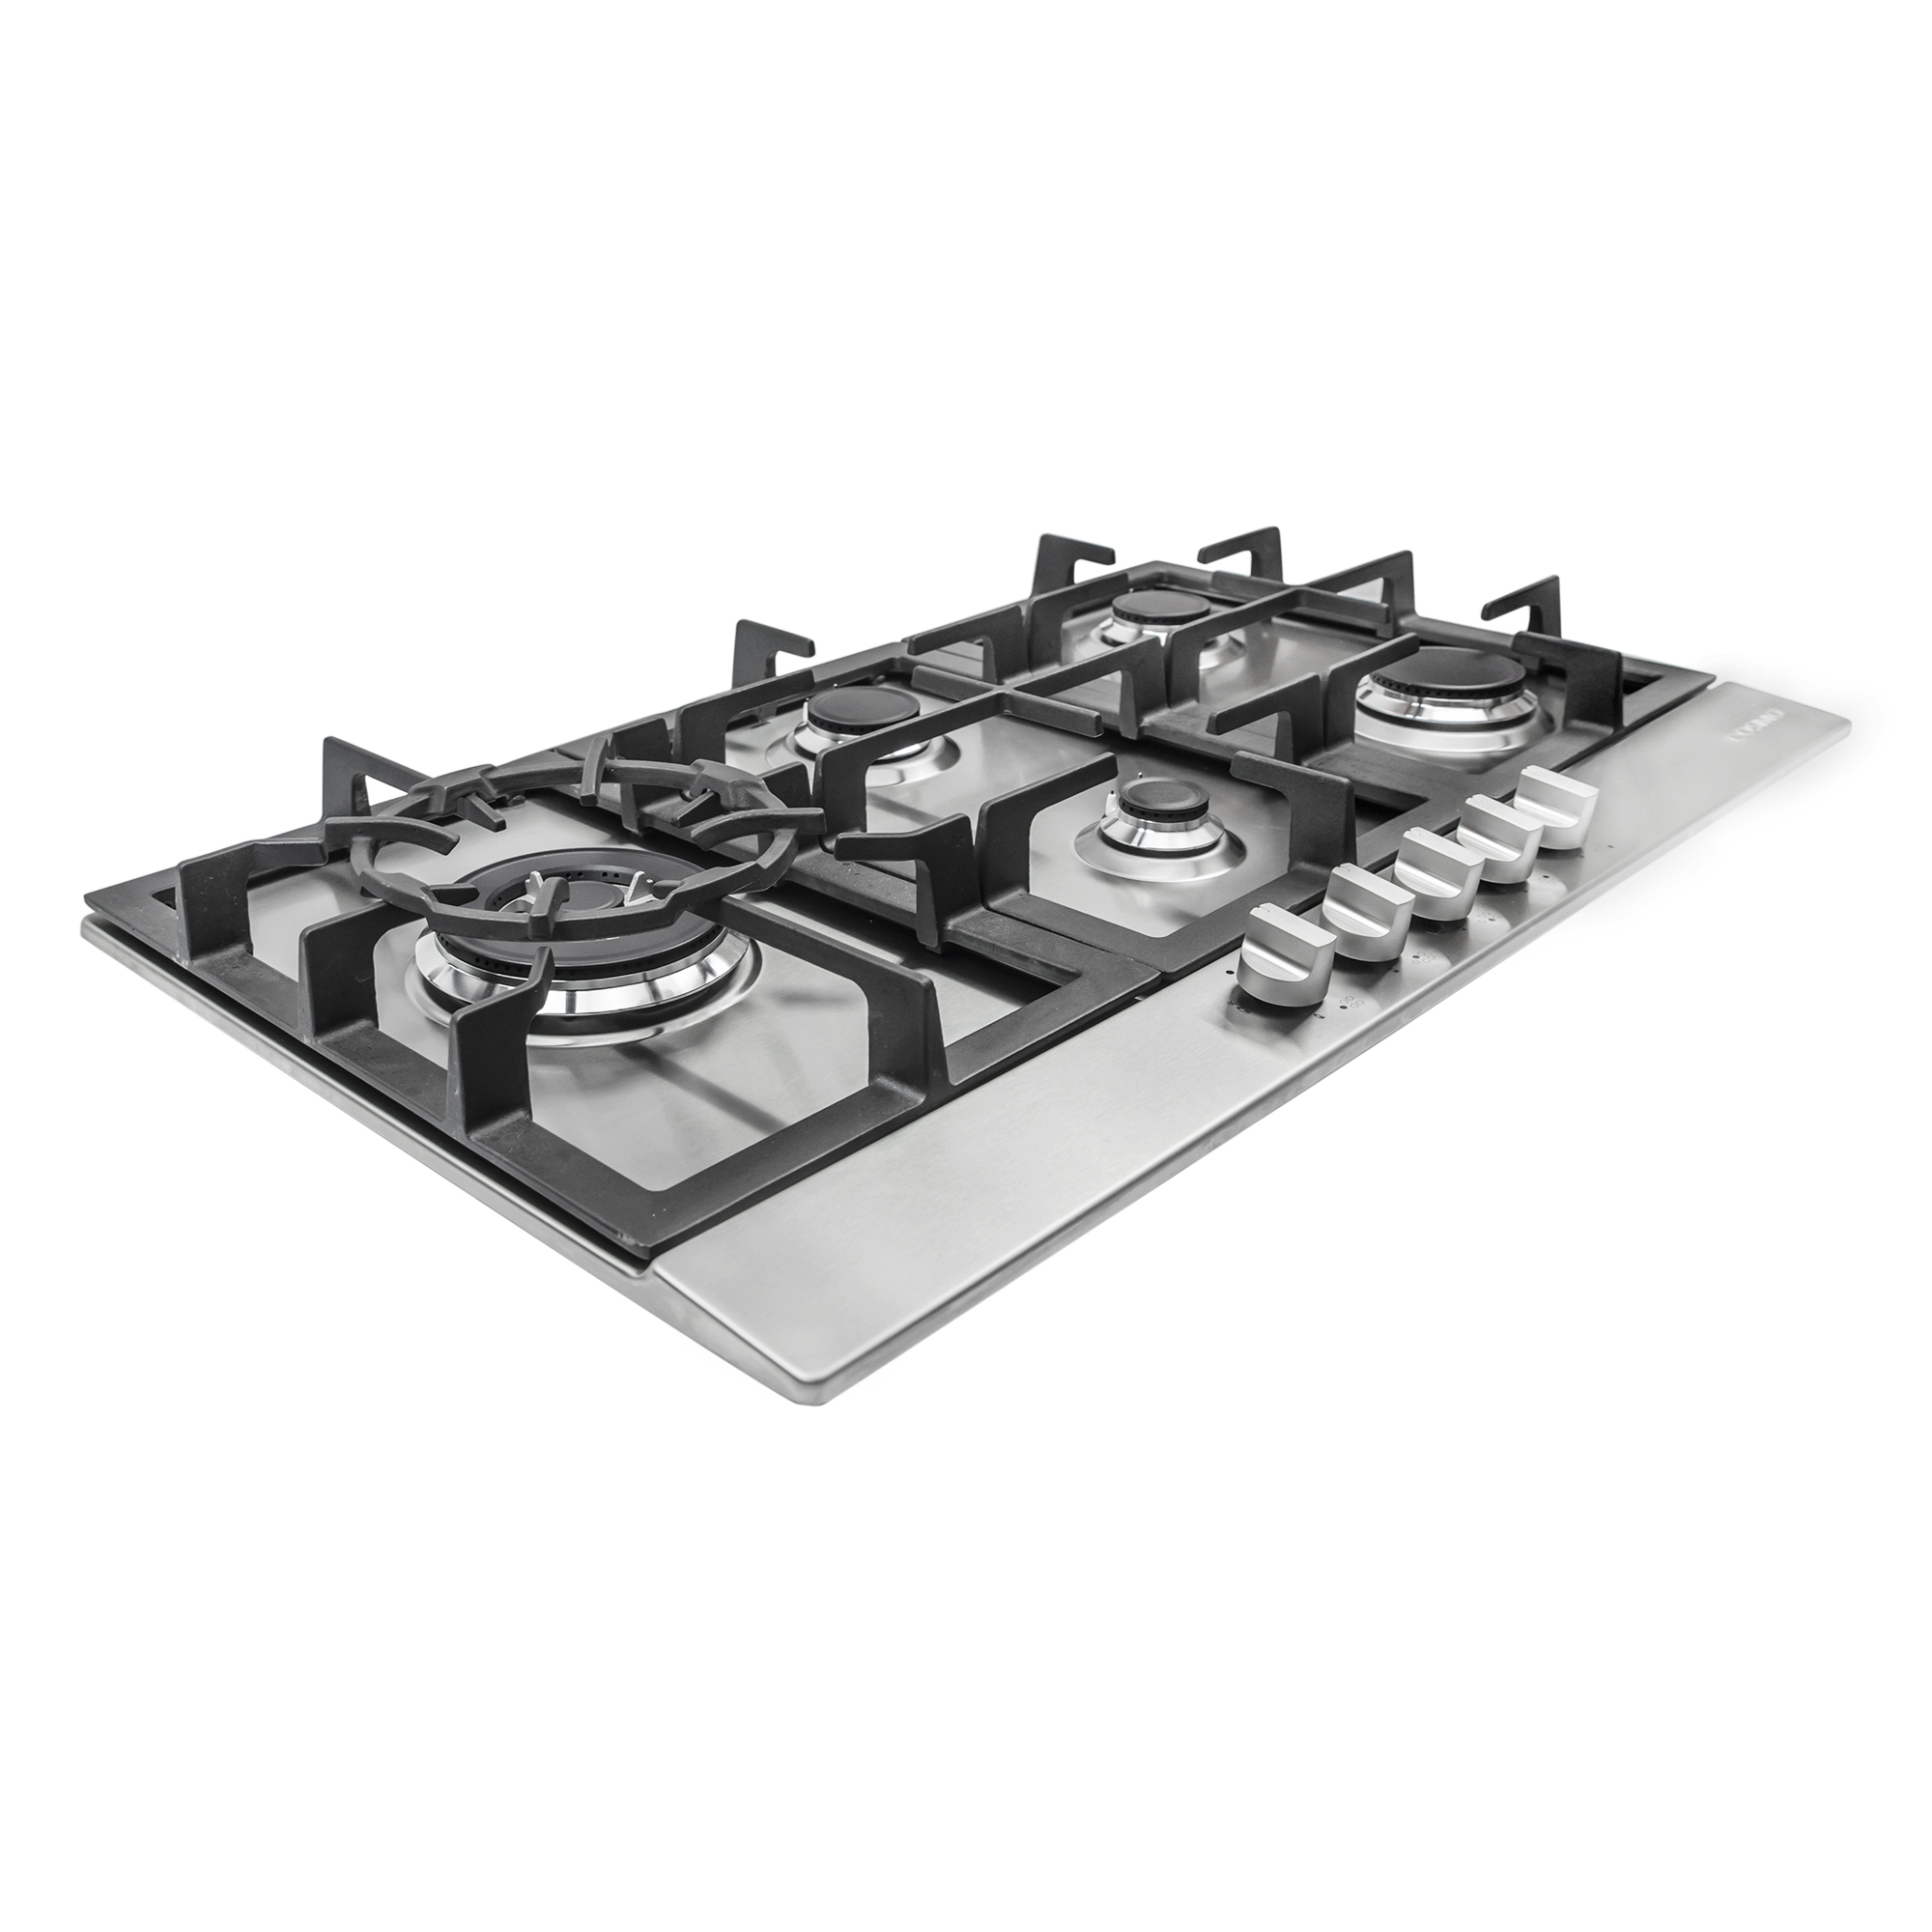 30 Gas Cooktop With 5 Burners 850sltx E